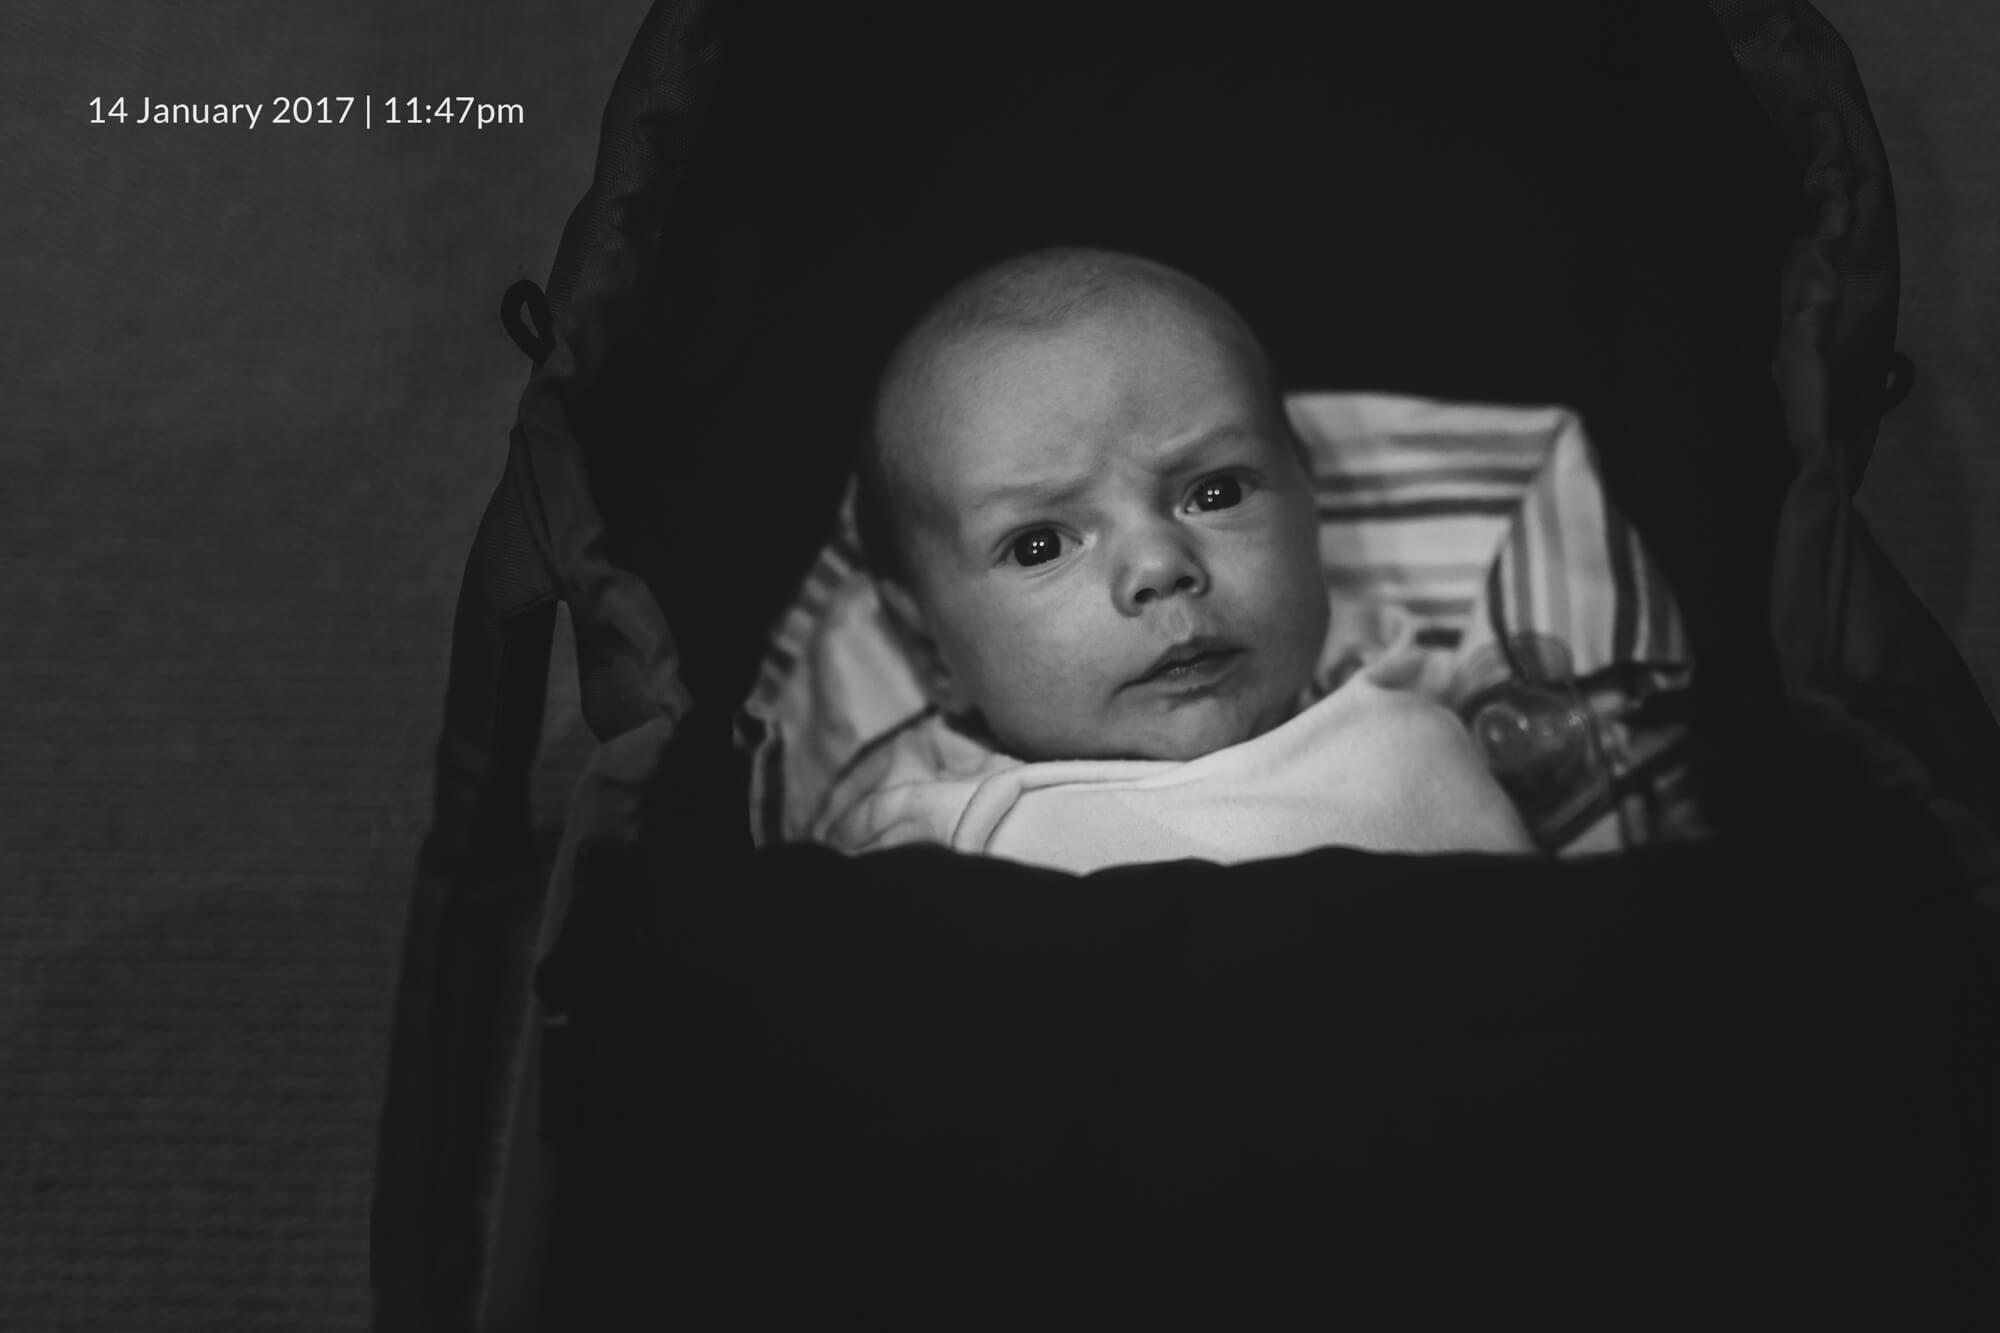 Newborn lifestyle photographer in Melbourne. Black and white lifestyle portrait of a newborn baby.